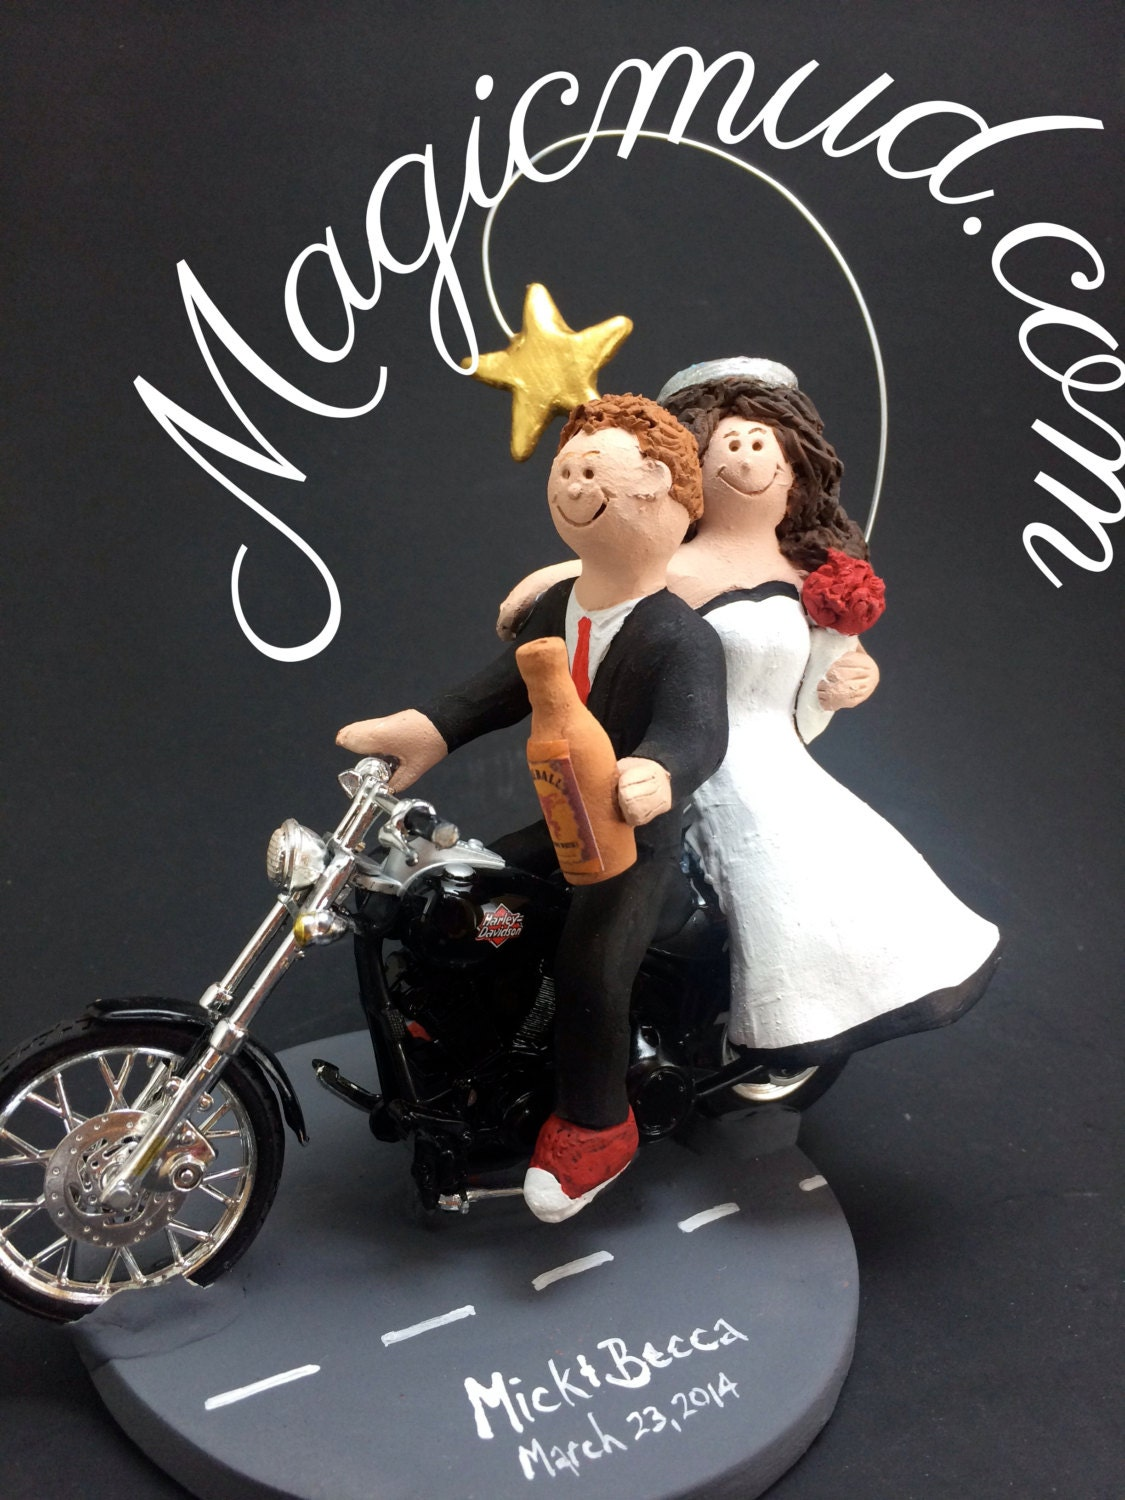 harley davidson wedding cake toppers canada goateed groom on a harley wedding cake by weddingcaketoppers 15078